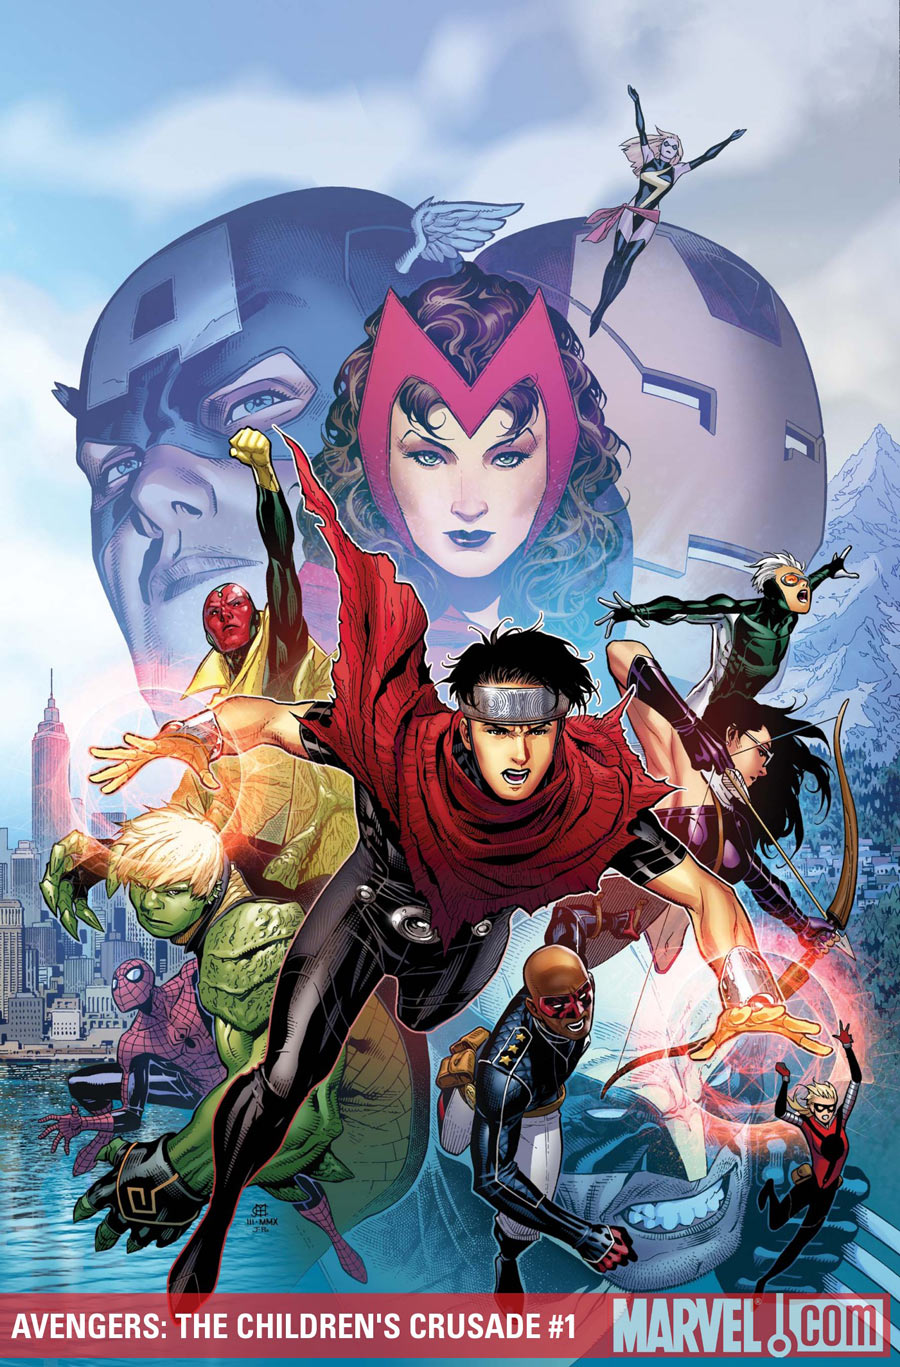 http://comicculturewarrior.files.wordpress.com/2010/04/avengers-the-childrens-crusade-1.jpg